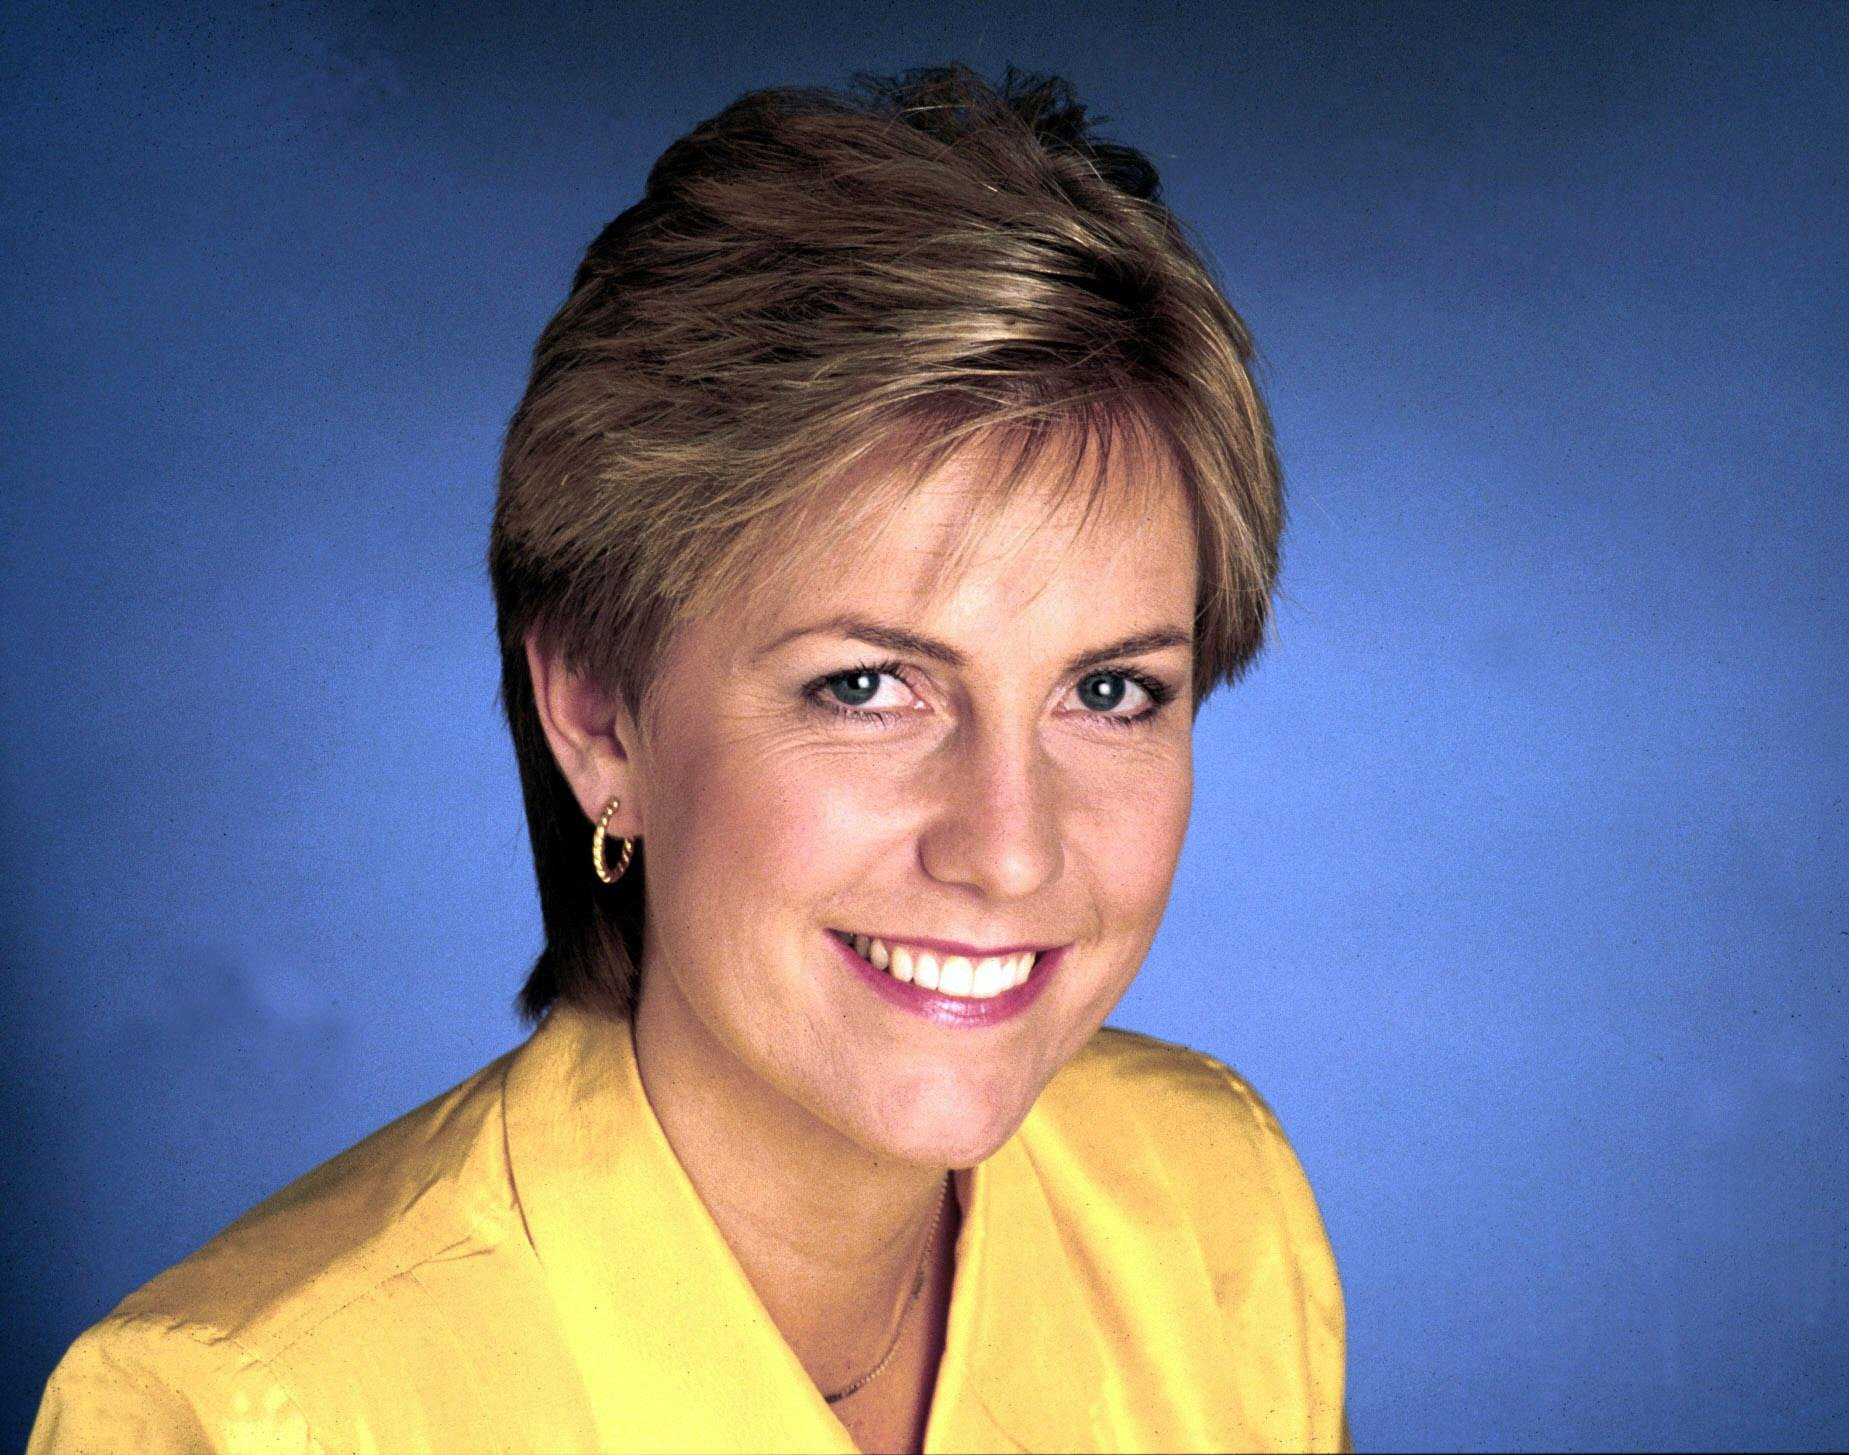 When is the Jill Dando documentary airing on TV – everything we know so far